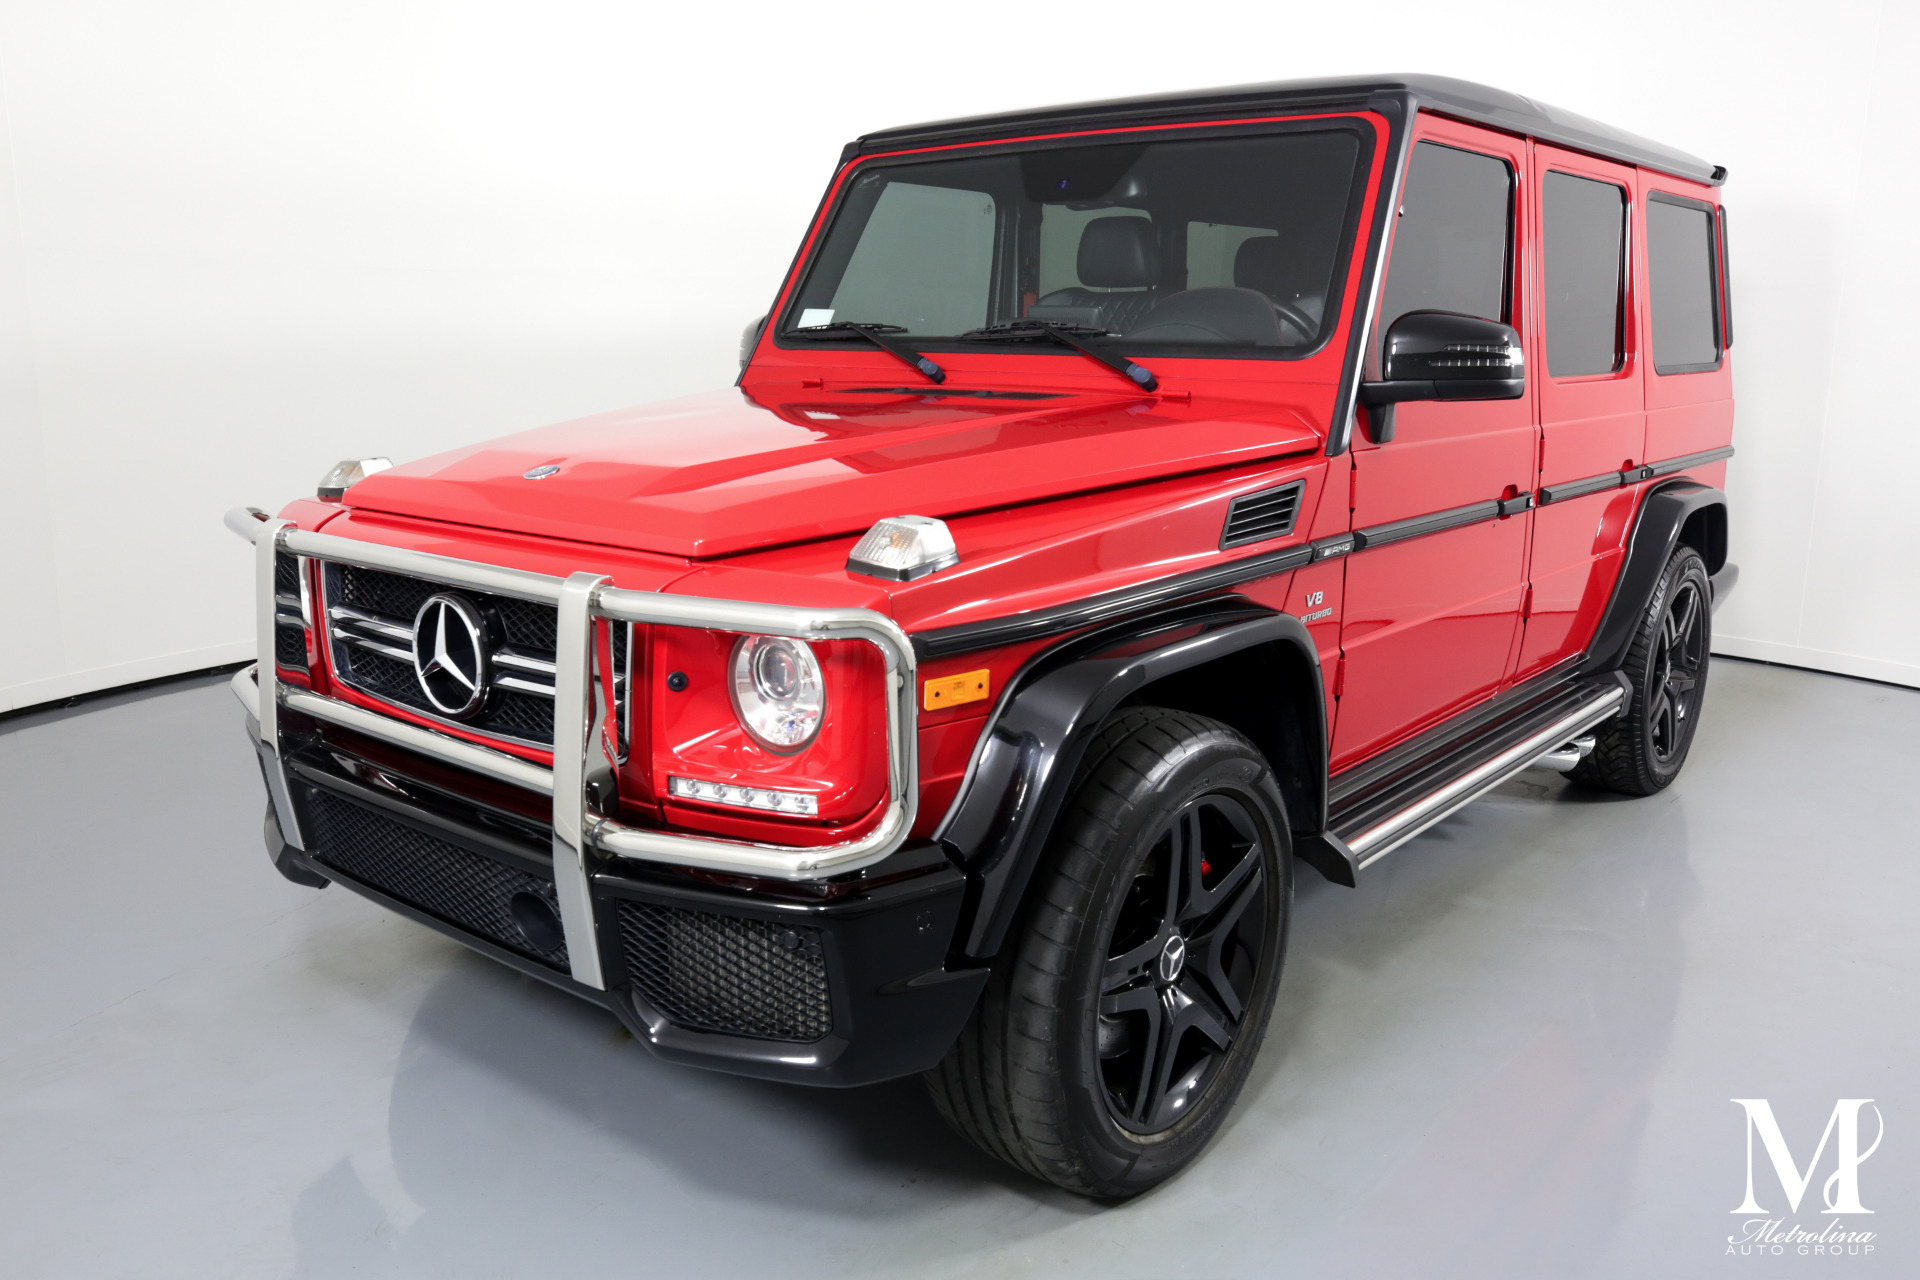 Used 2017 Mercedes-Benz G-Class AMG G 63 AWD 4MATIC 4dr SUV for sale Sold at Metrolina Auto Group in Charlotte NC 28217 - 4